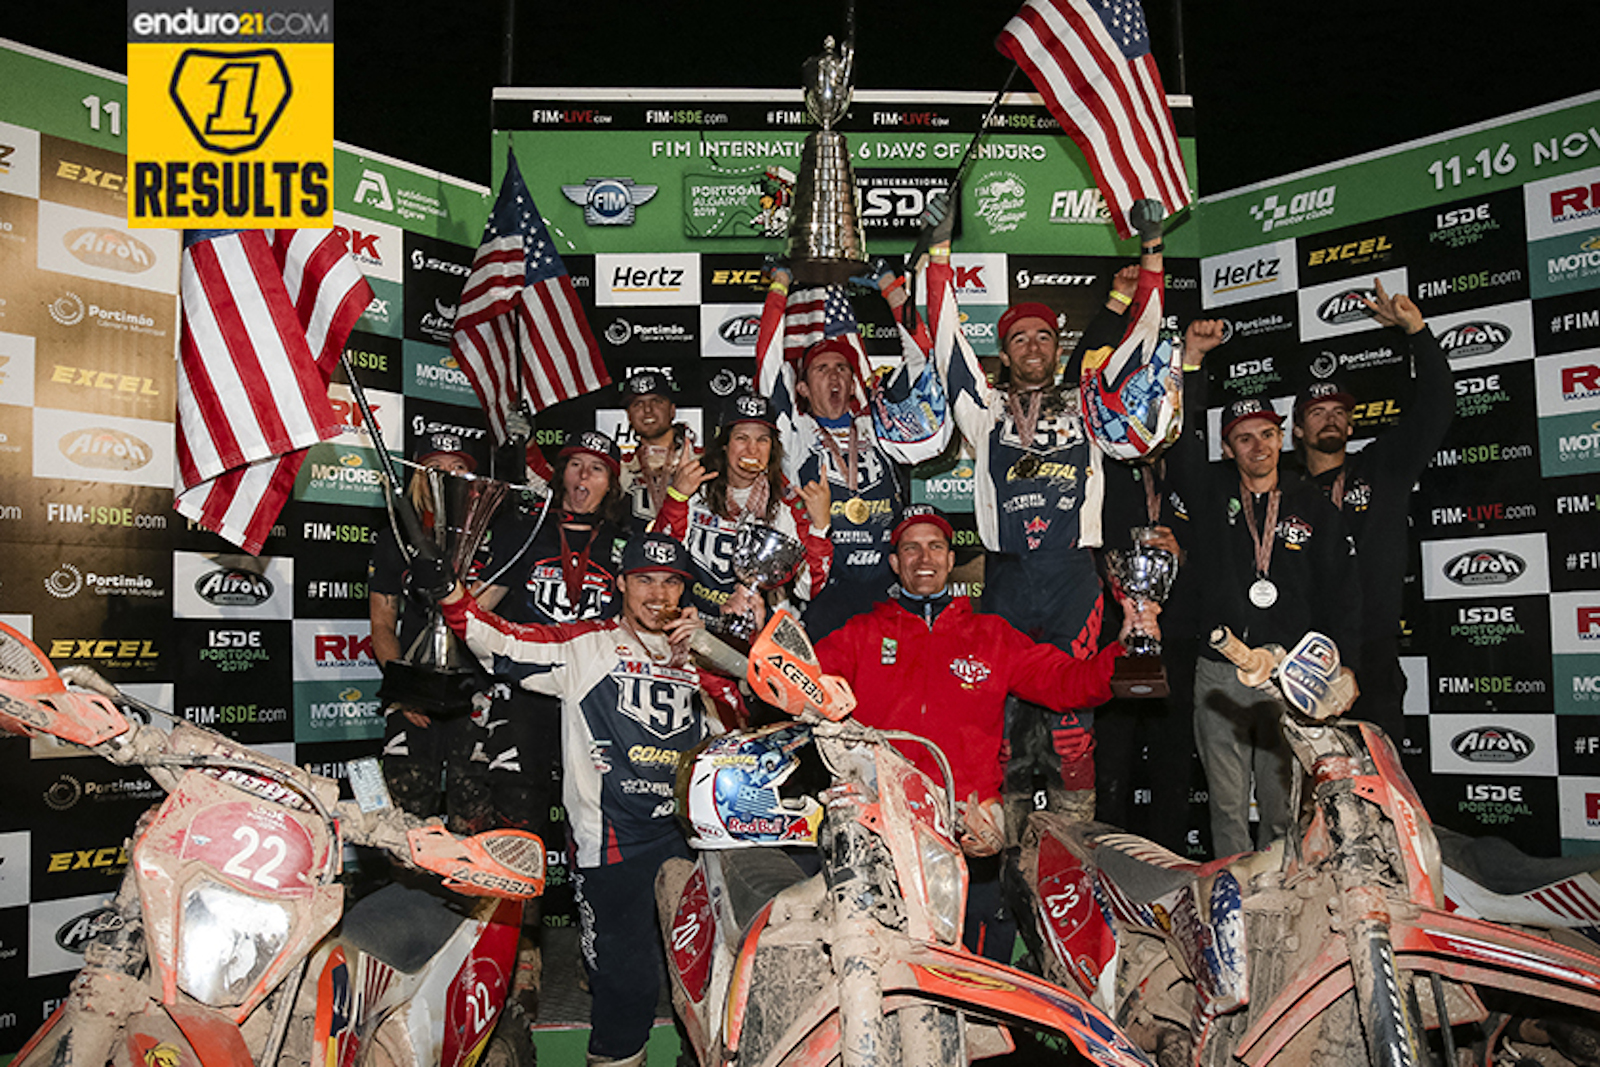 Results feed: ISDE 2019 Day 6 – USA take World and Women's Trophies, Australia win the Juniors